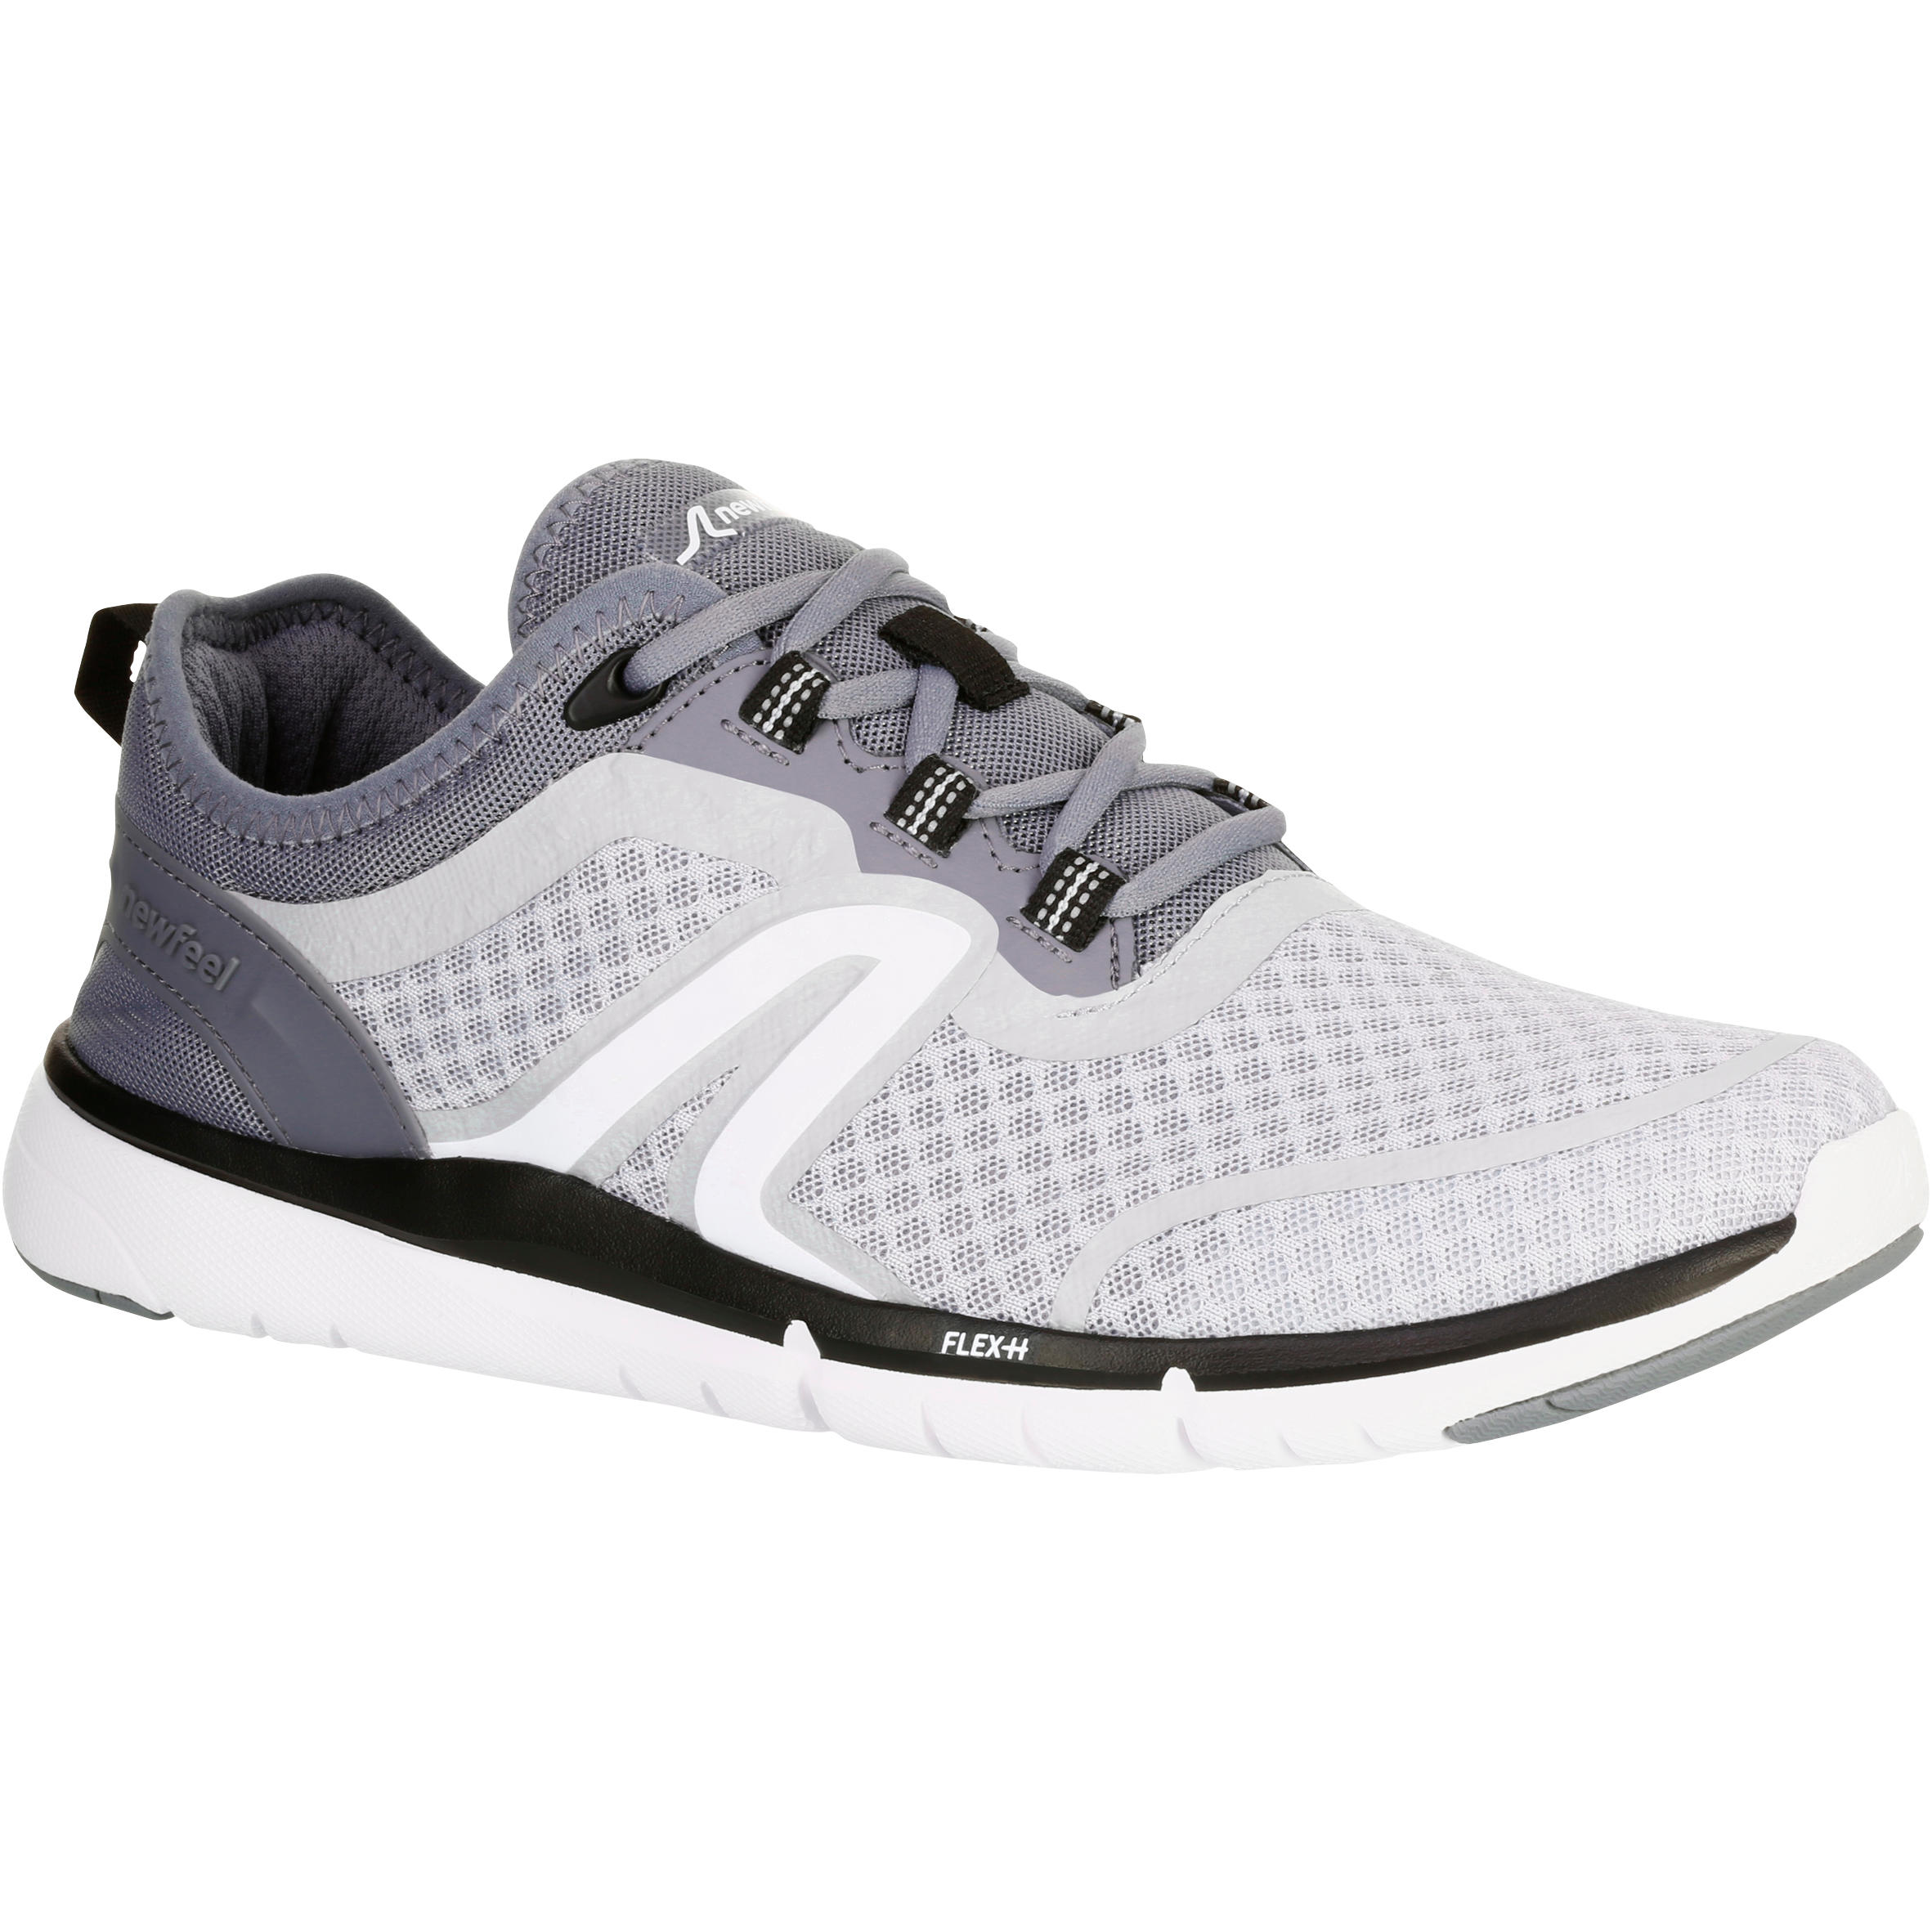 Soft Sportive Chaussures Marche Gris 540 Homme Mesh yfgvY6b7